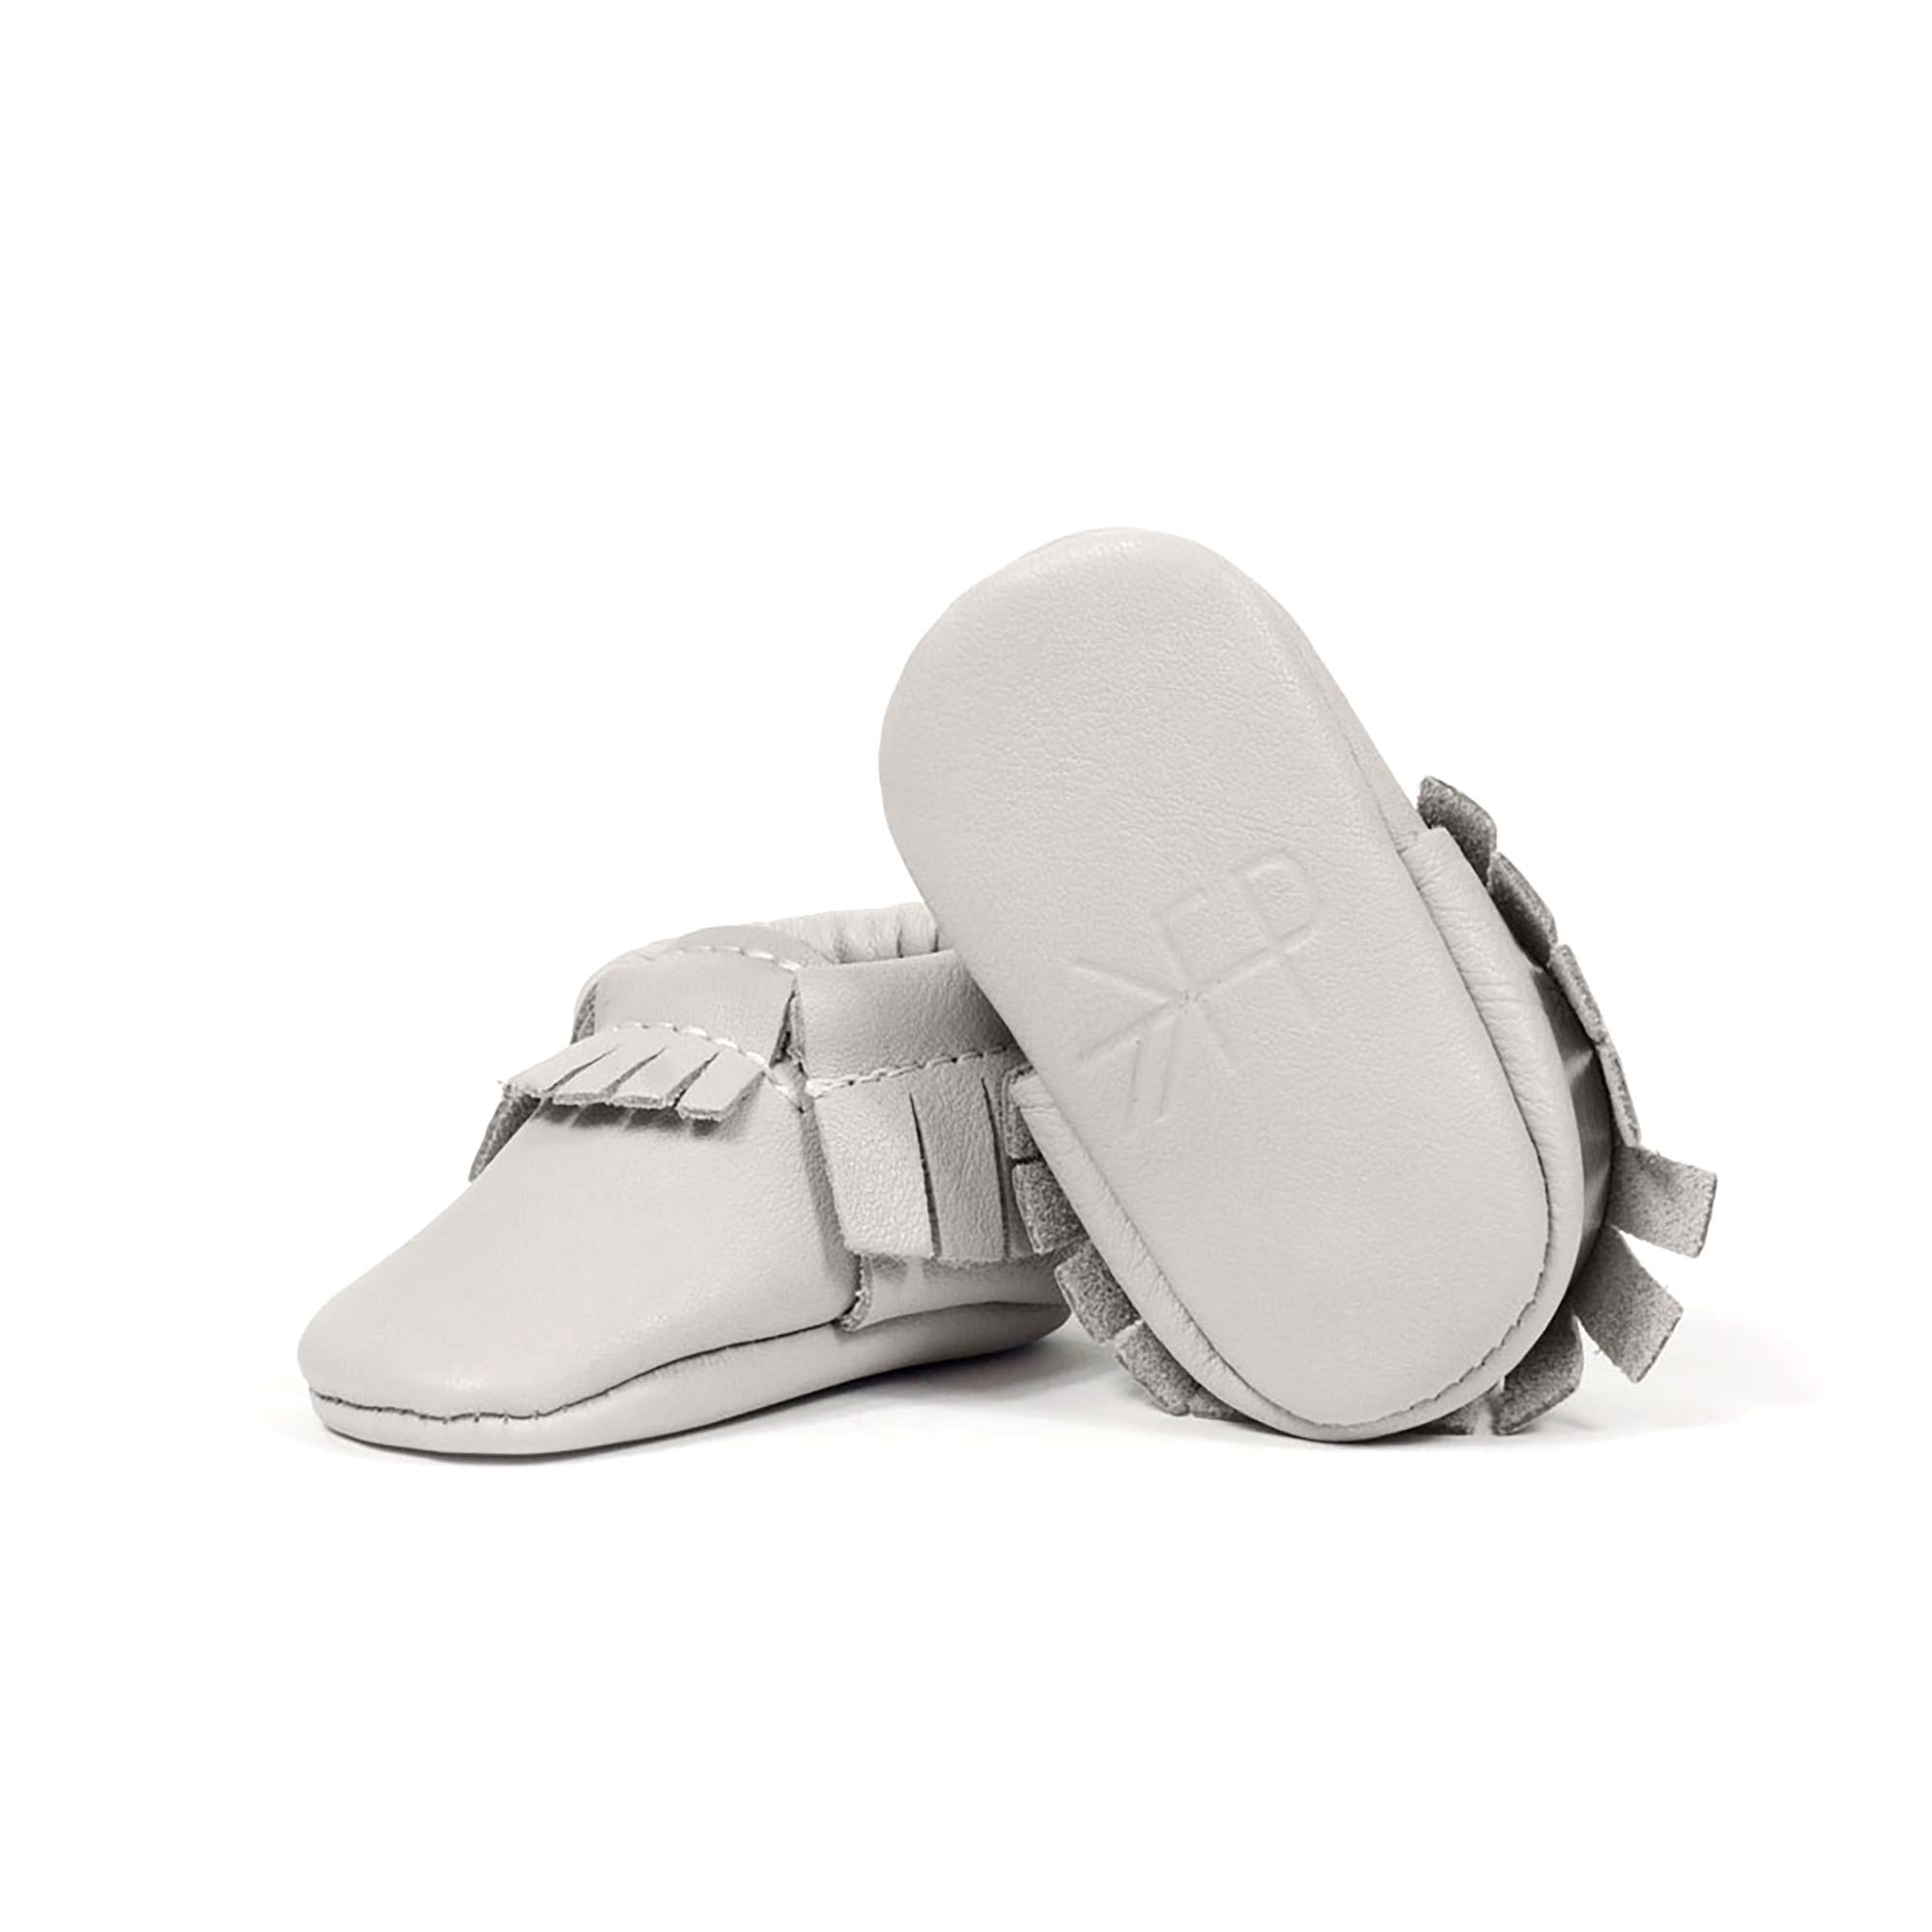 Freshly Picked - Soft Sole Leather Moccasins - Newborn Baby Girl Boy Shoes - Size 0 Cashmere Gray by Freshly Picked